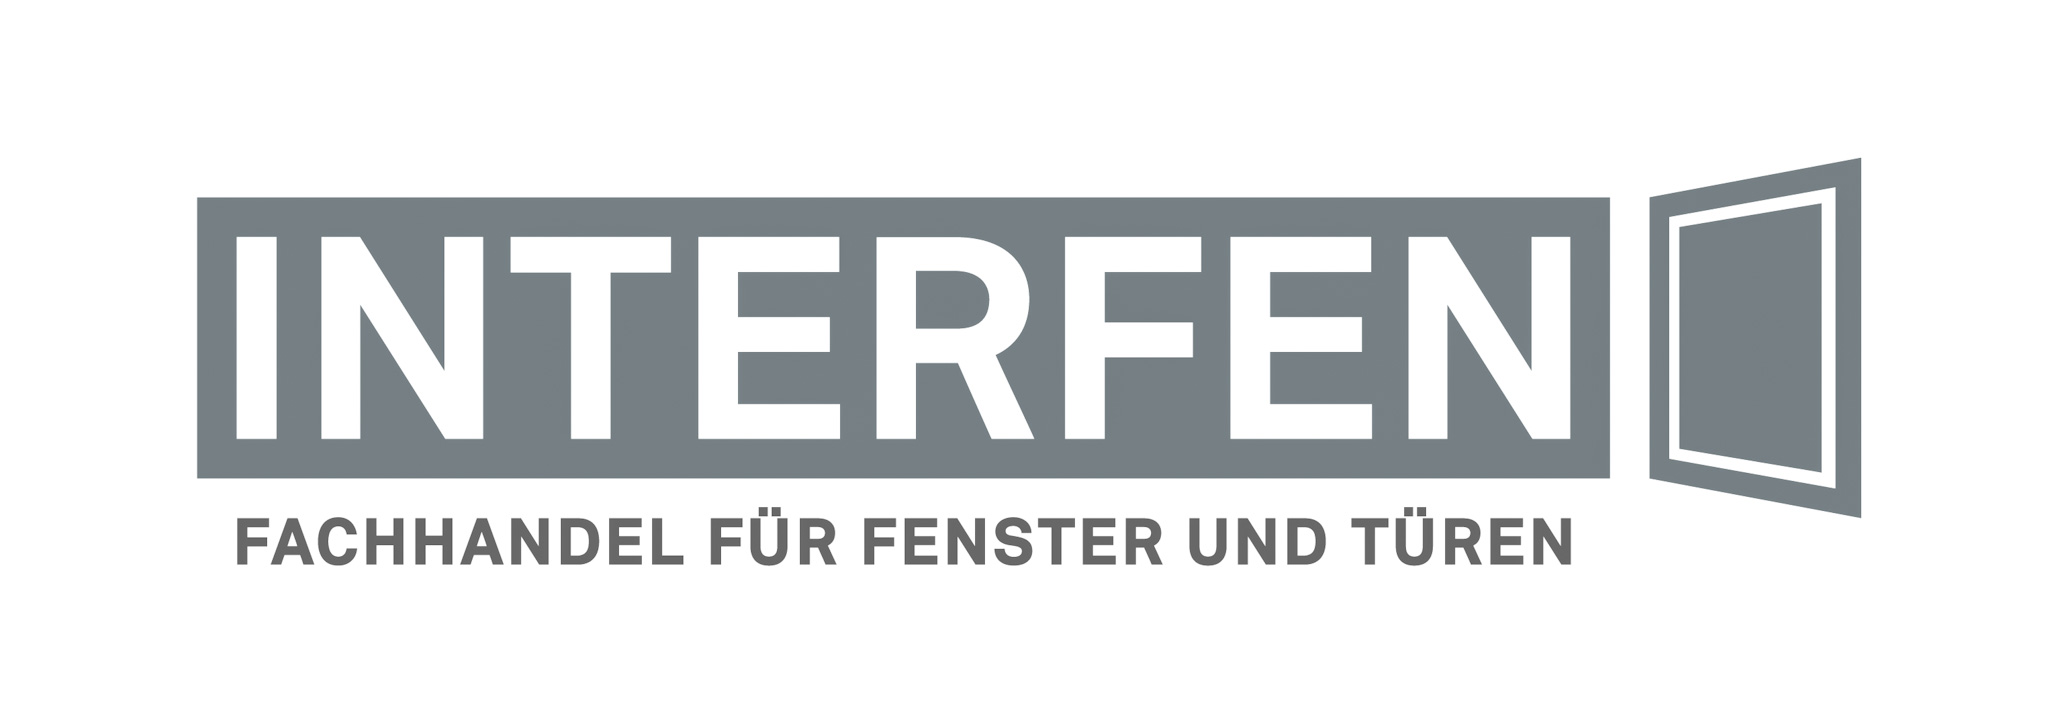 Interfen